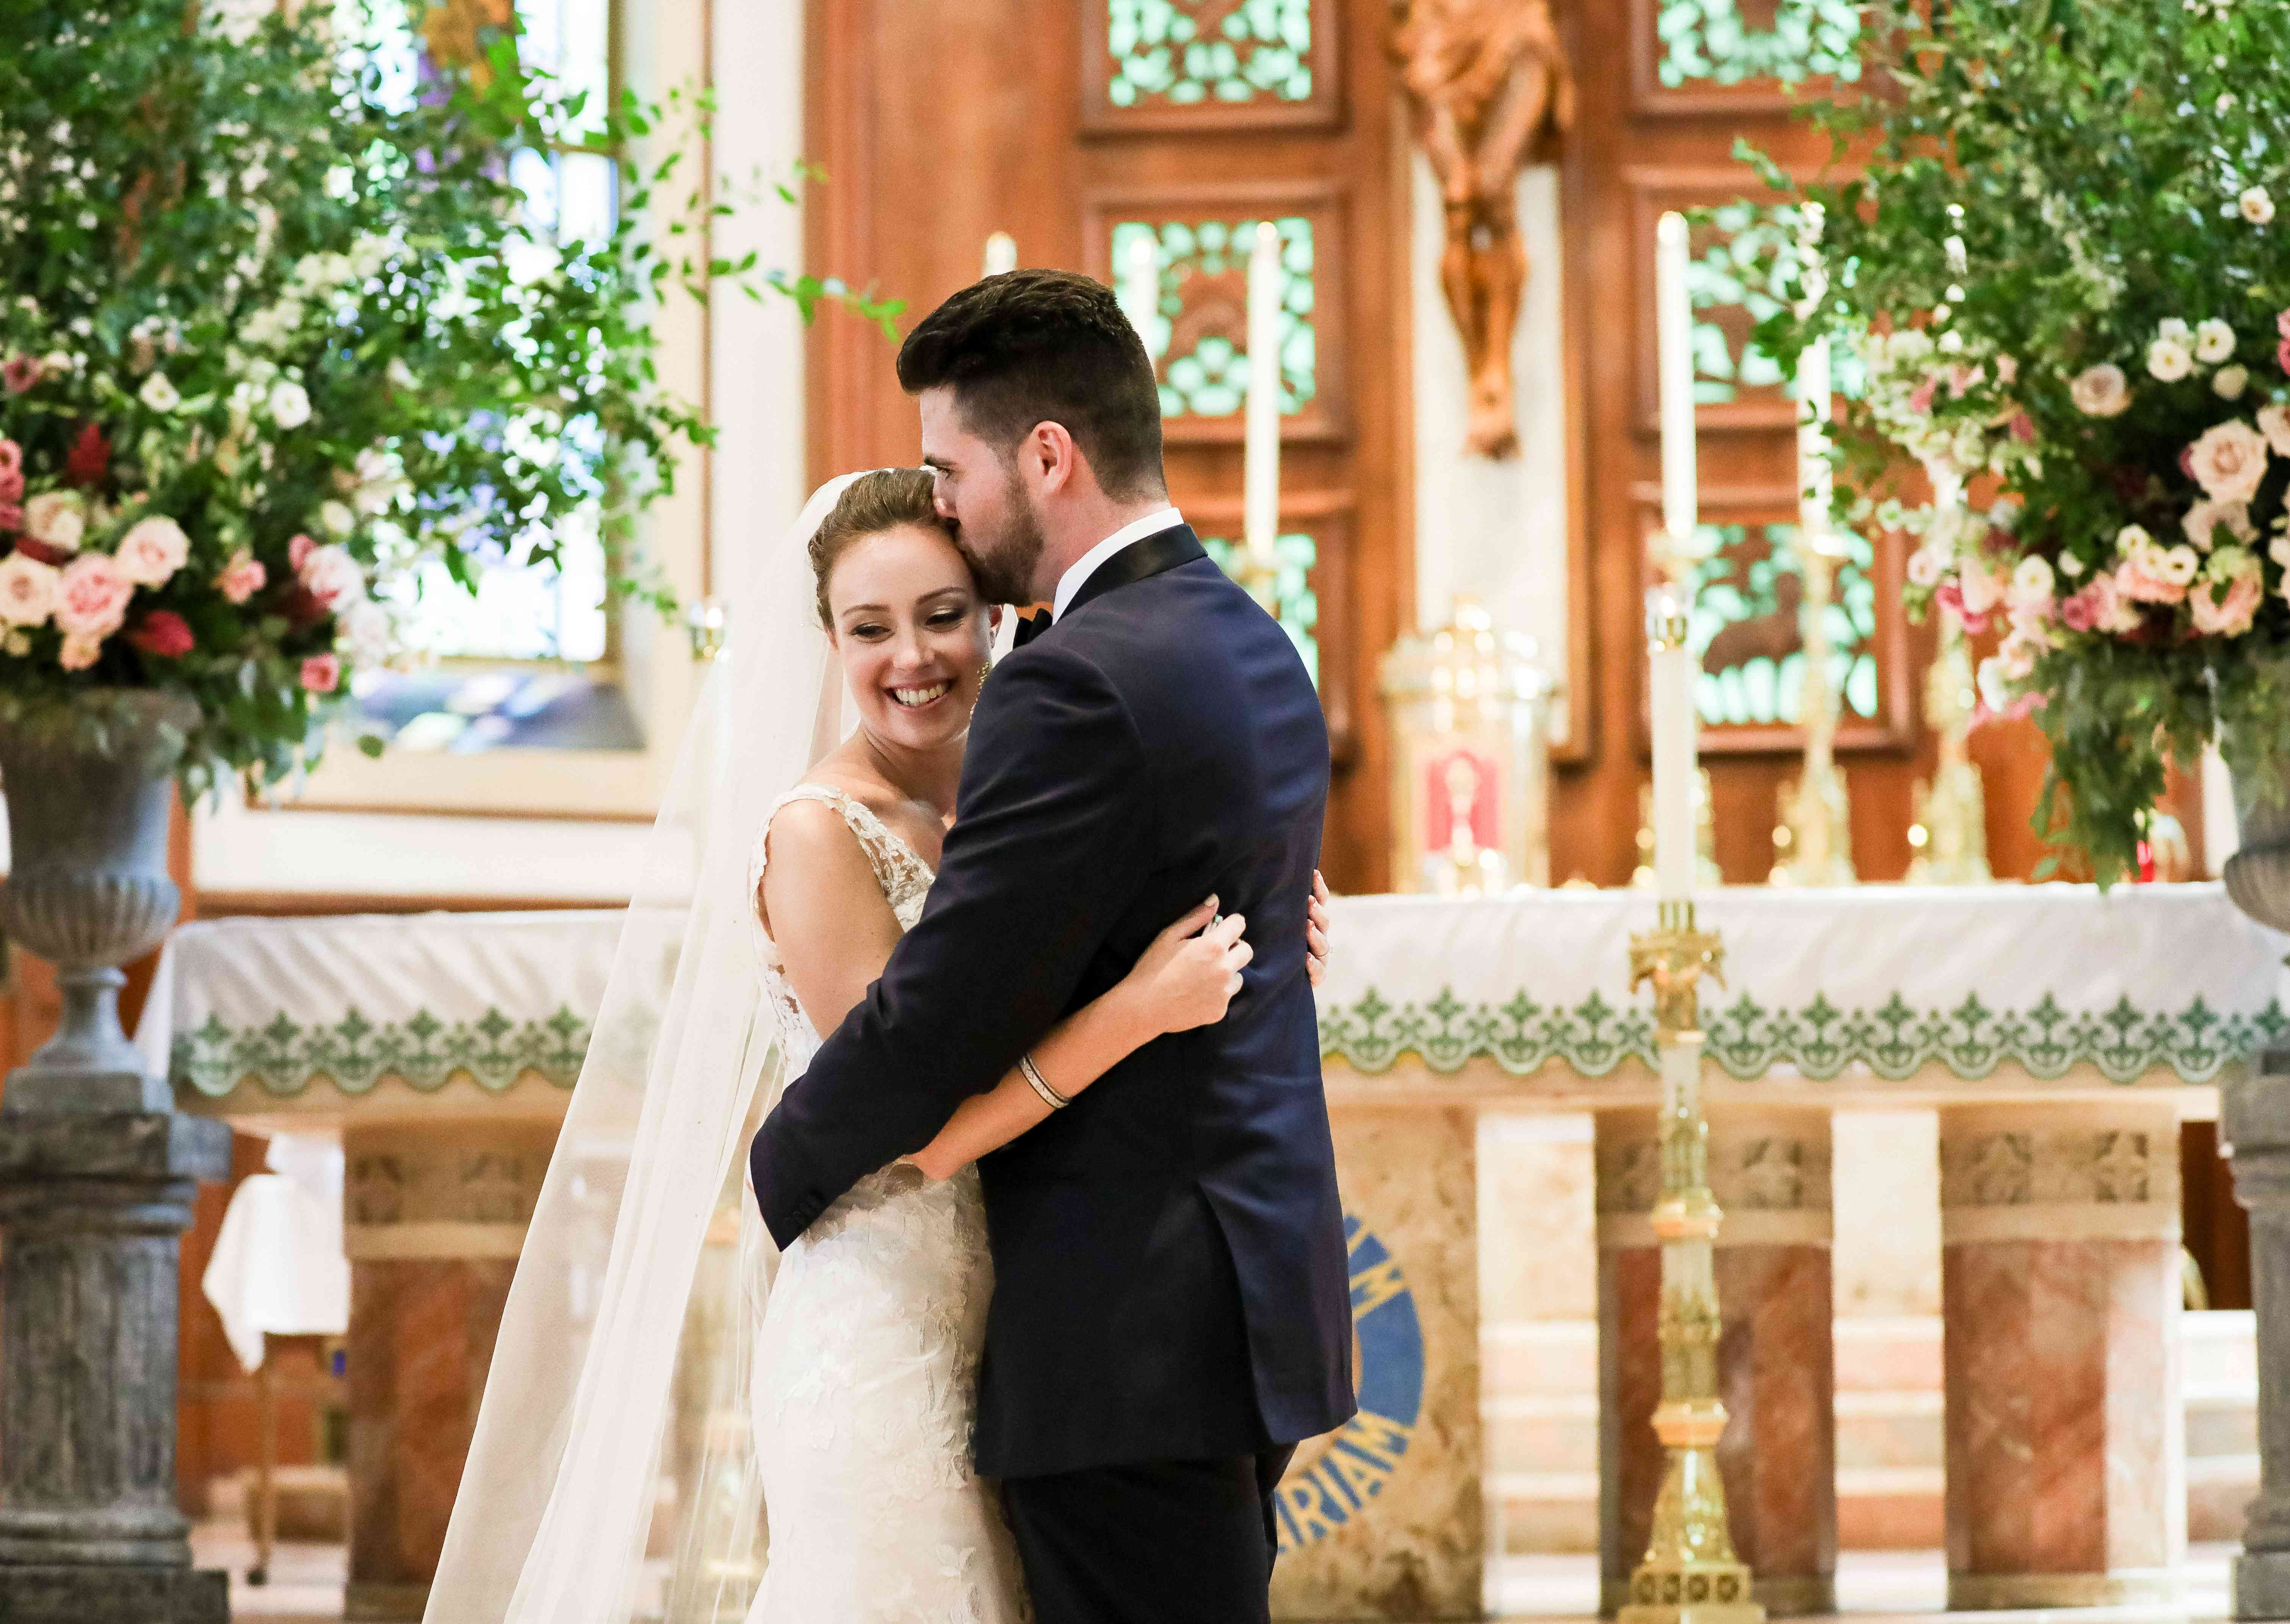 <p>bride and groom at altar church ceremony</p><br><br>